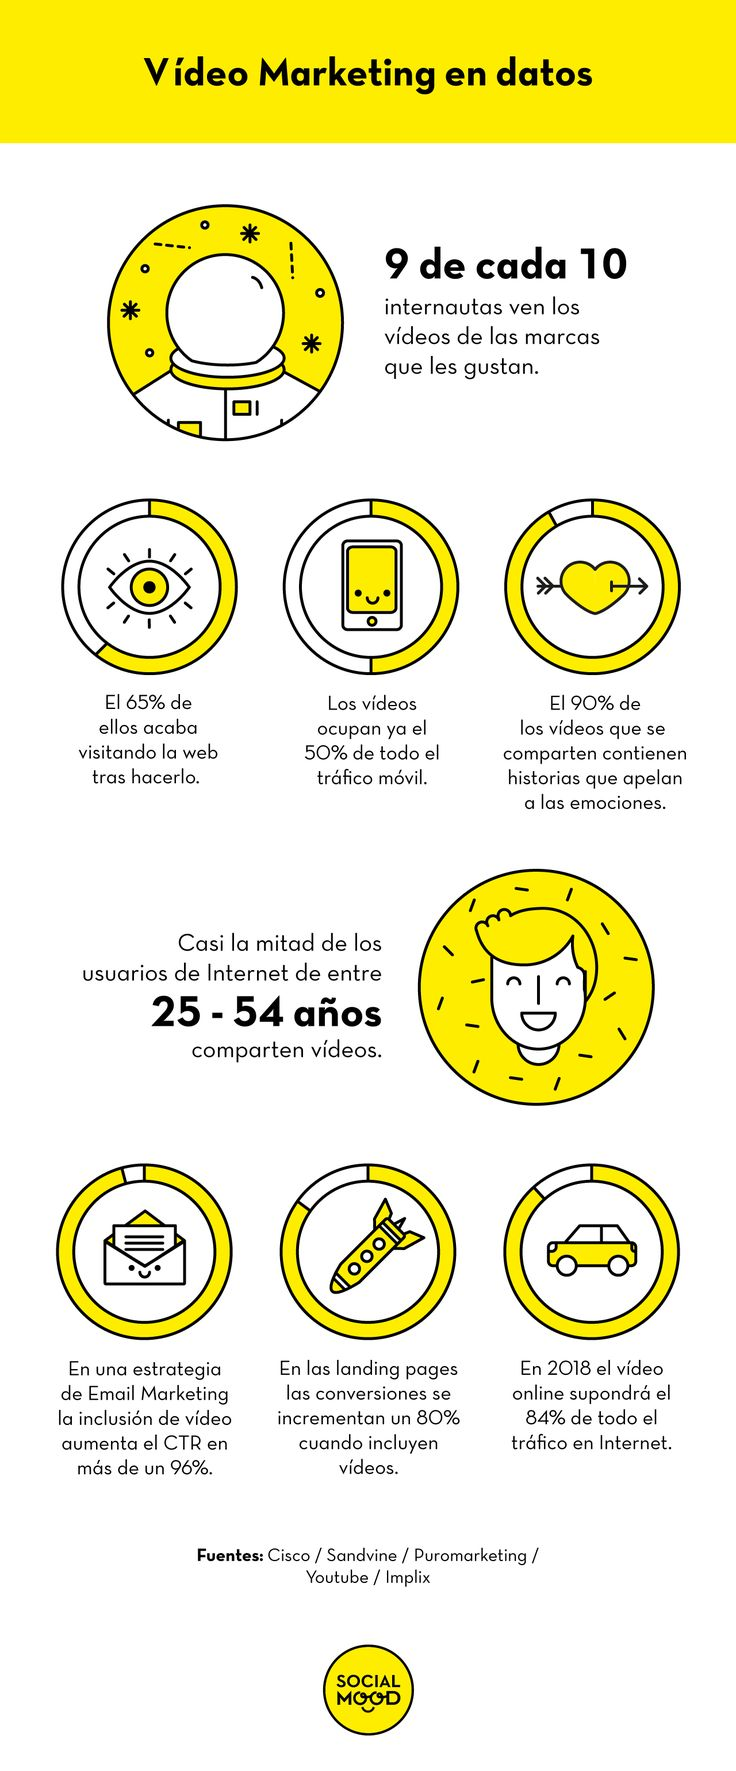 Me encanta esta infografía sobre video marketing